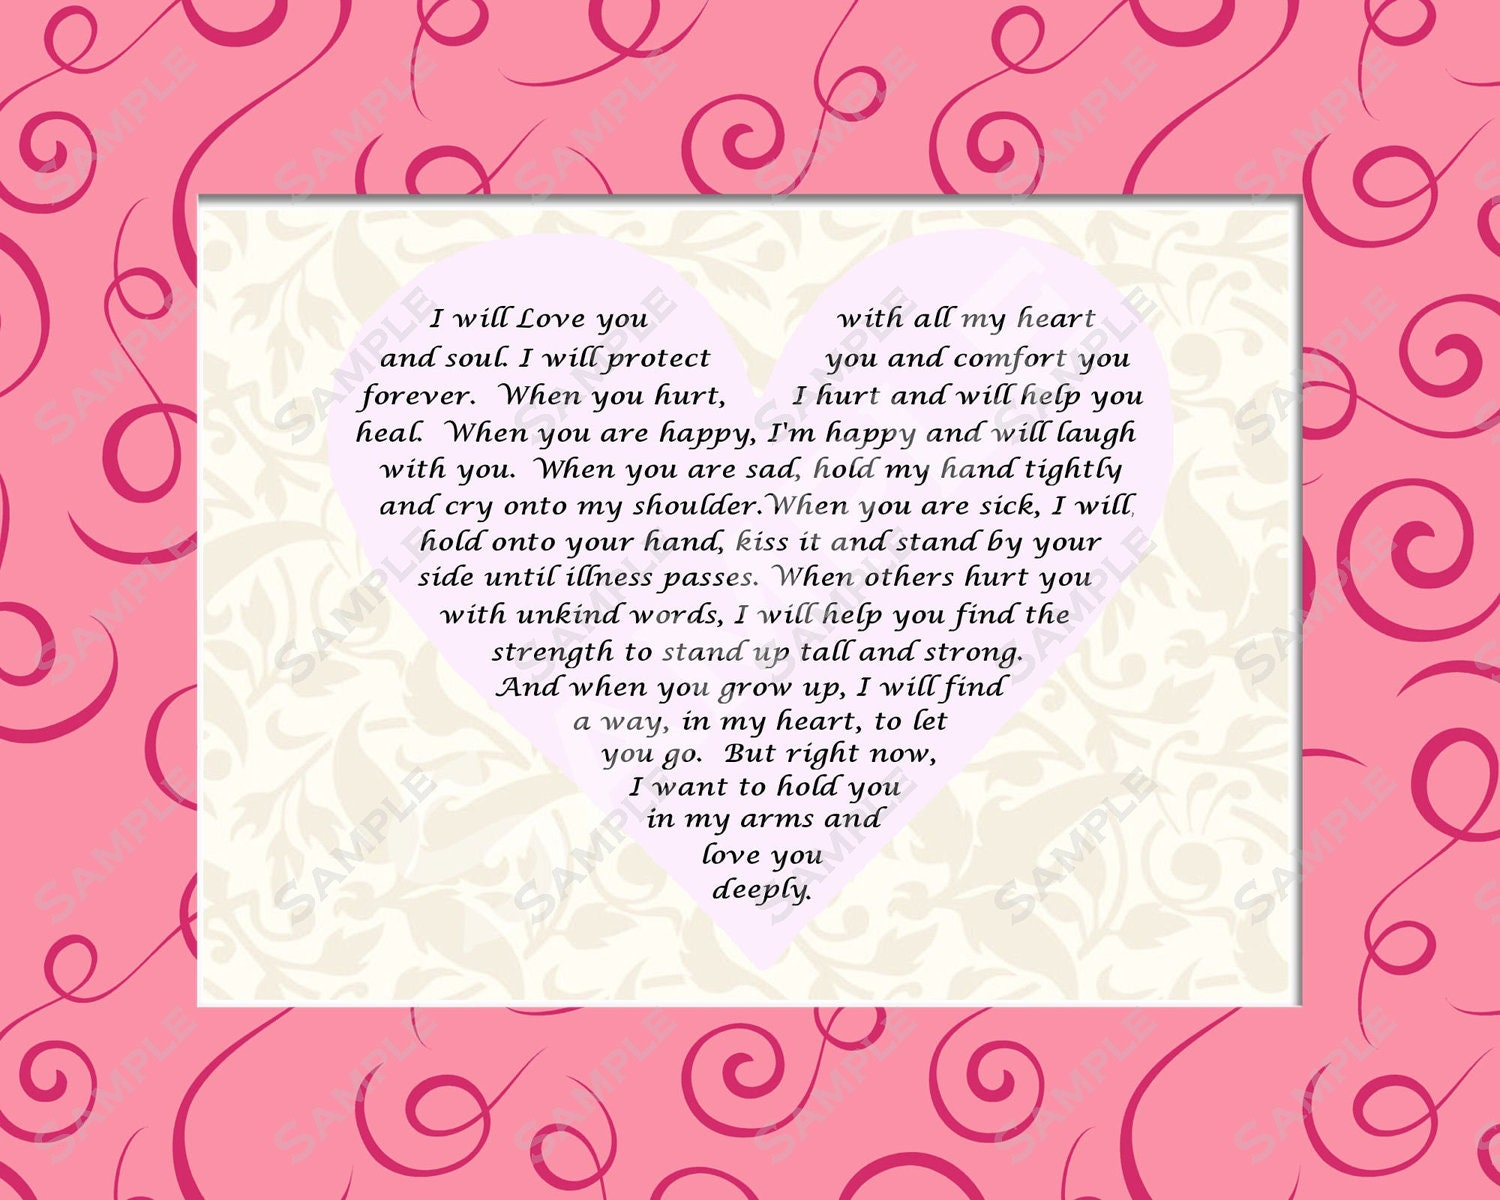 Find and save ideas about Baby girl poems on Pinterest. | See more ideas about Baby poems for boys, For my daughter and Poem for my daughter. DIY and crafts. Baby girl poems; Baby girl poems Nursery rhyme totally work for a girl too! Where has my baby boy gone & who is this old in his place? Always the apple of mummy's eye tho.